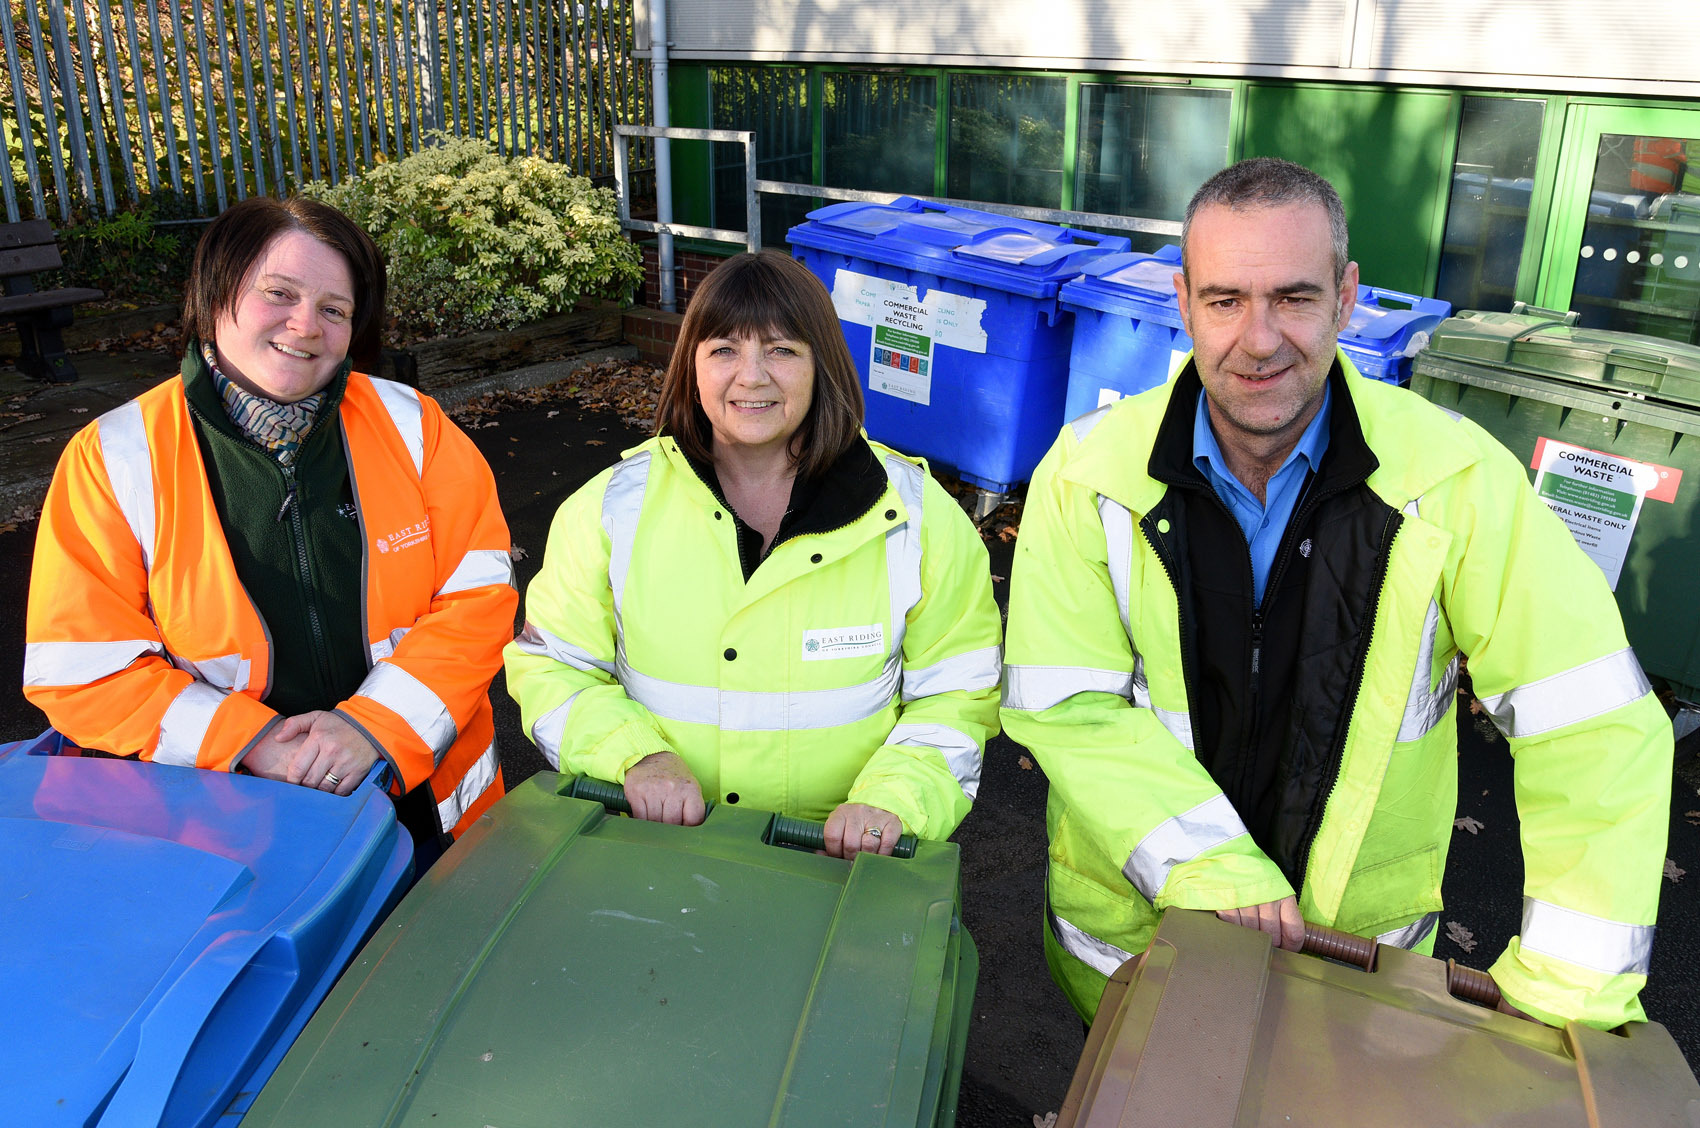 1.Waste and recycling officers Emma Jasper, Karen Wagg and Chris Black will be out and about for the Spring Clean campaign.